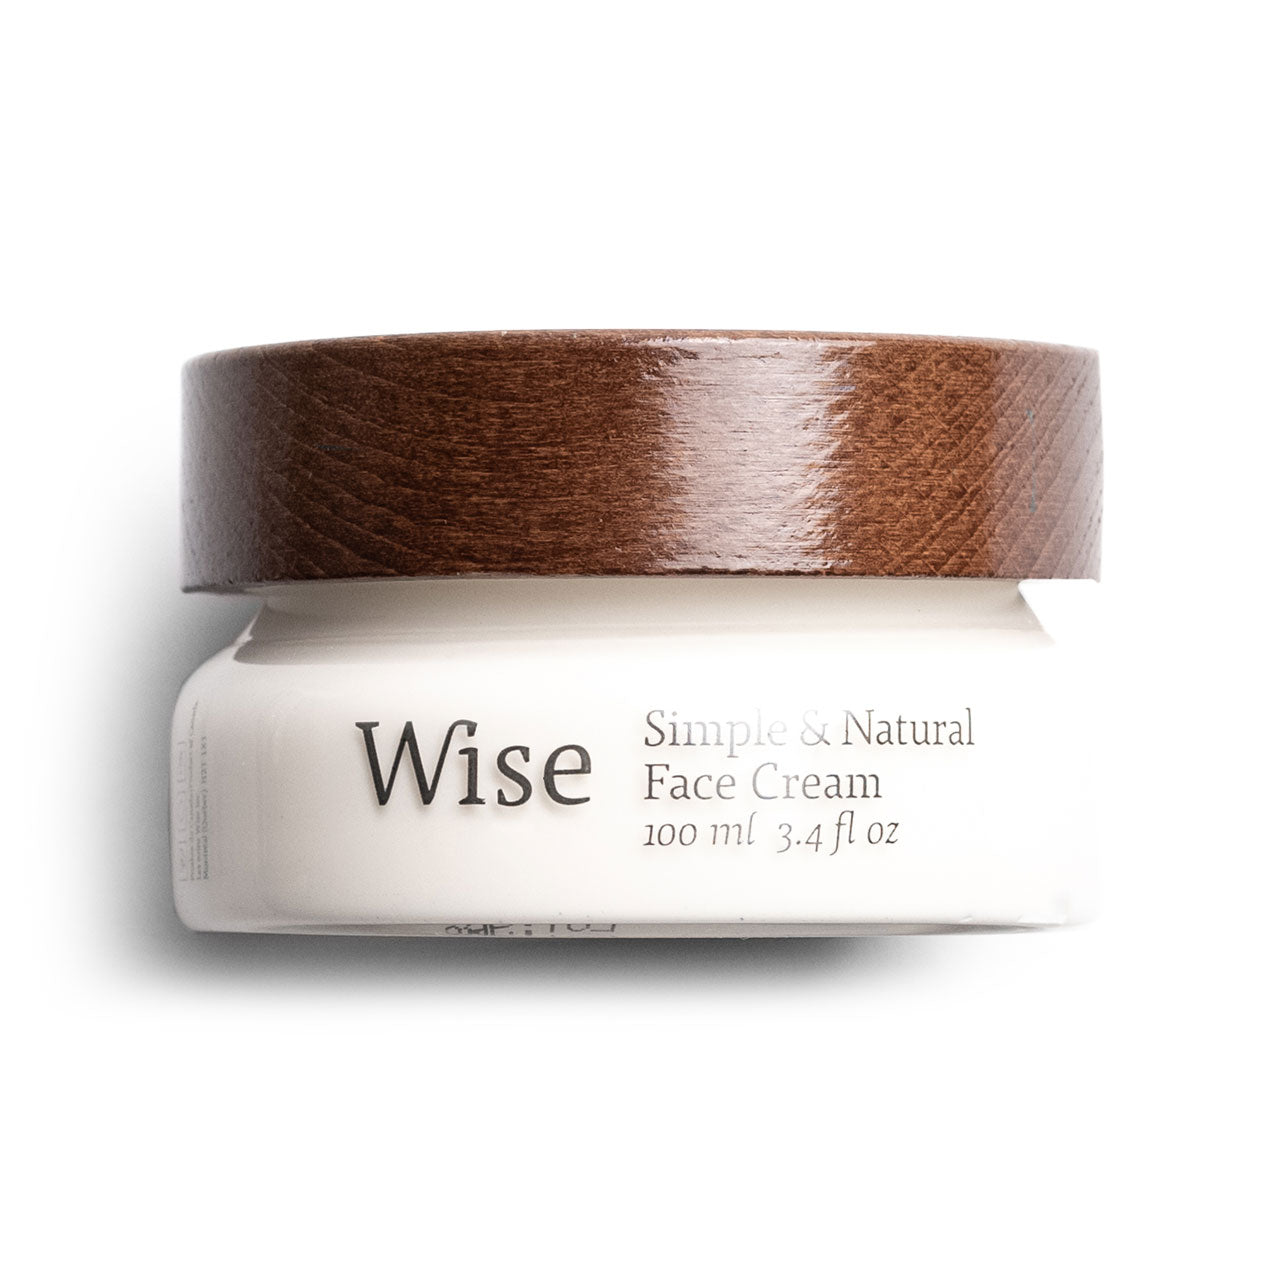 Wise Chaga Face Cream